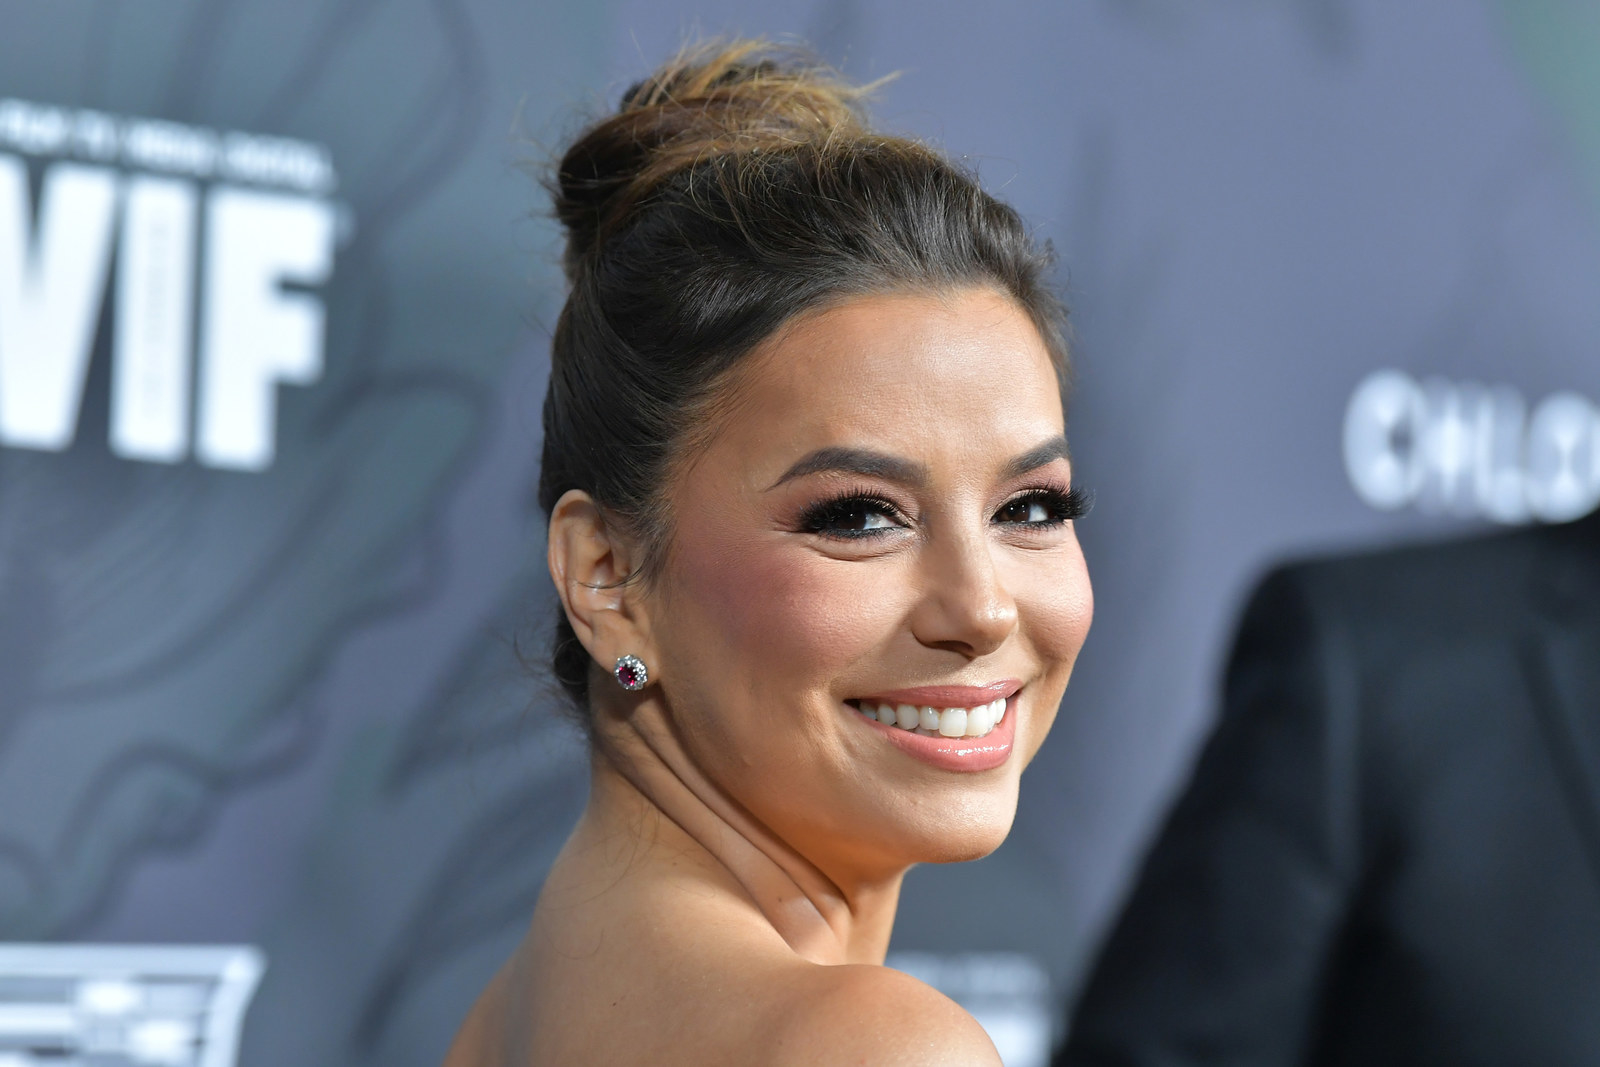 Eva Longoria will be 44 on March 15.